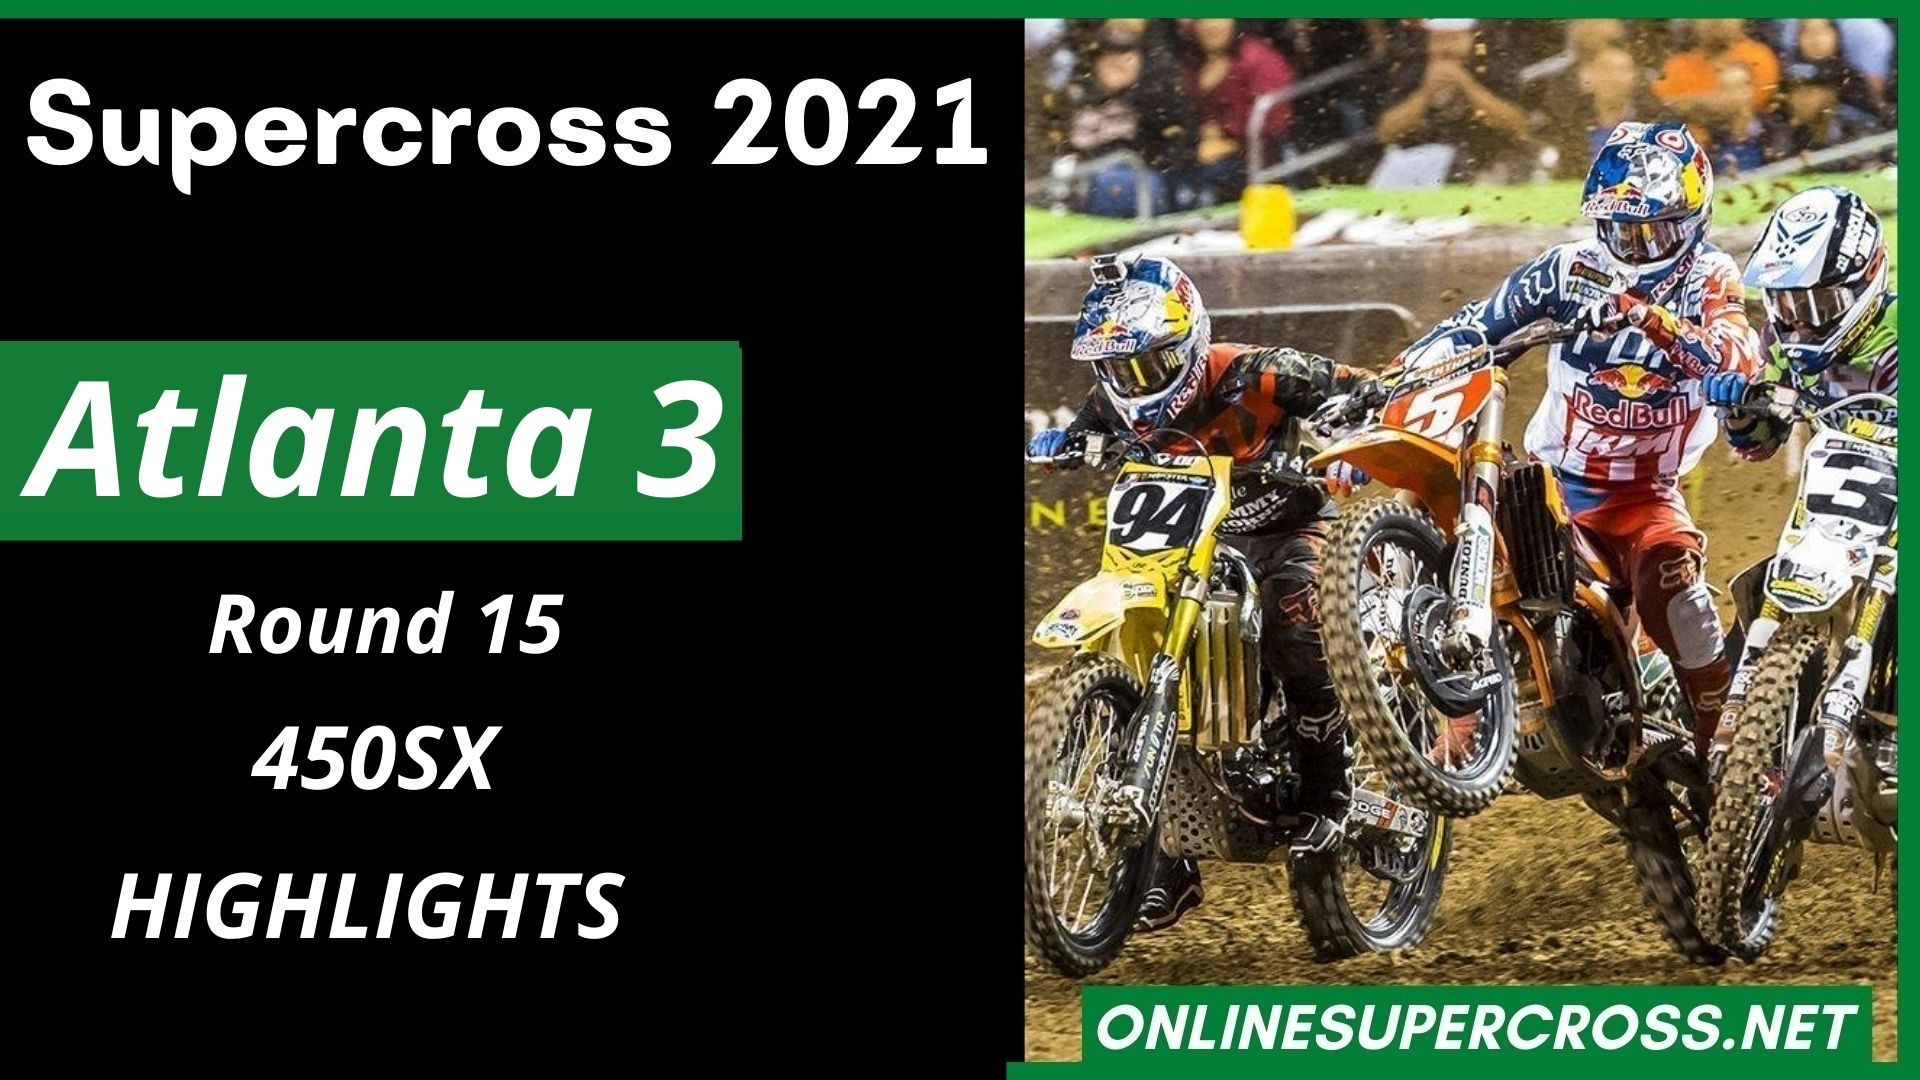 Atlanta 3 Round 15 Supercross 450SX Highlights 2021